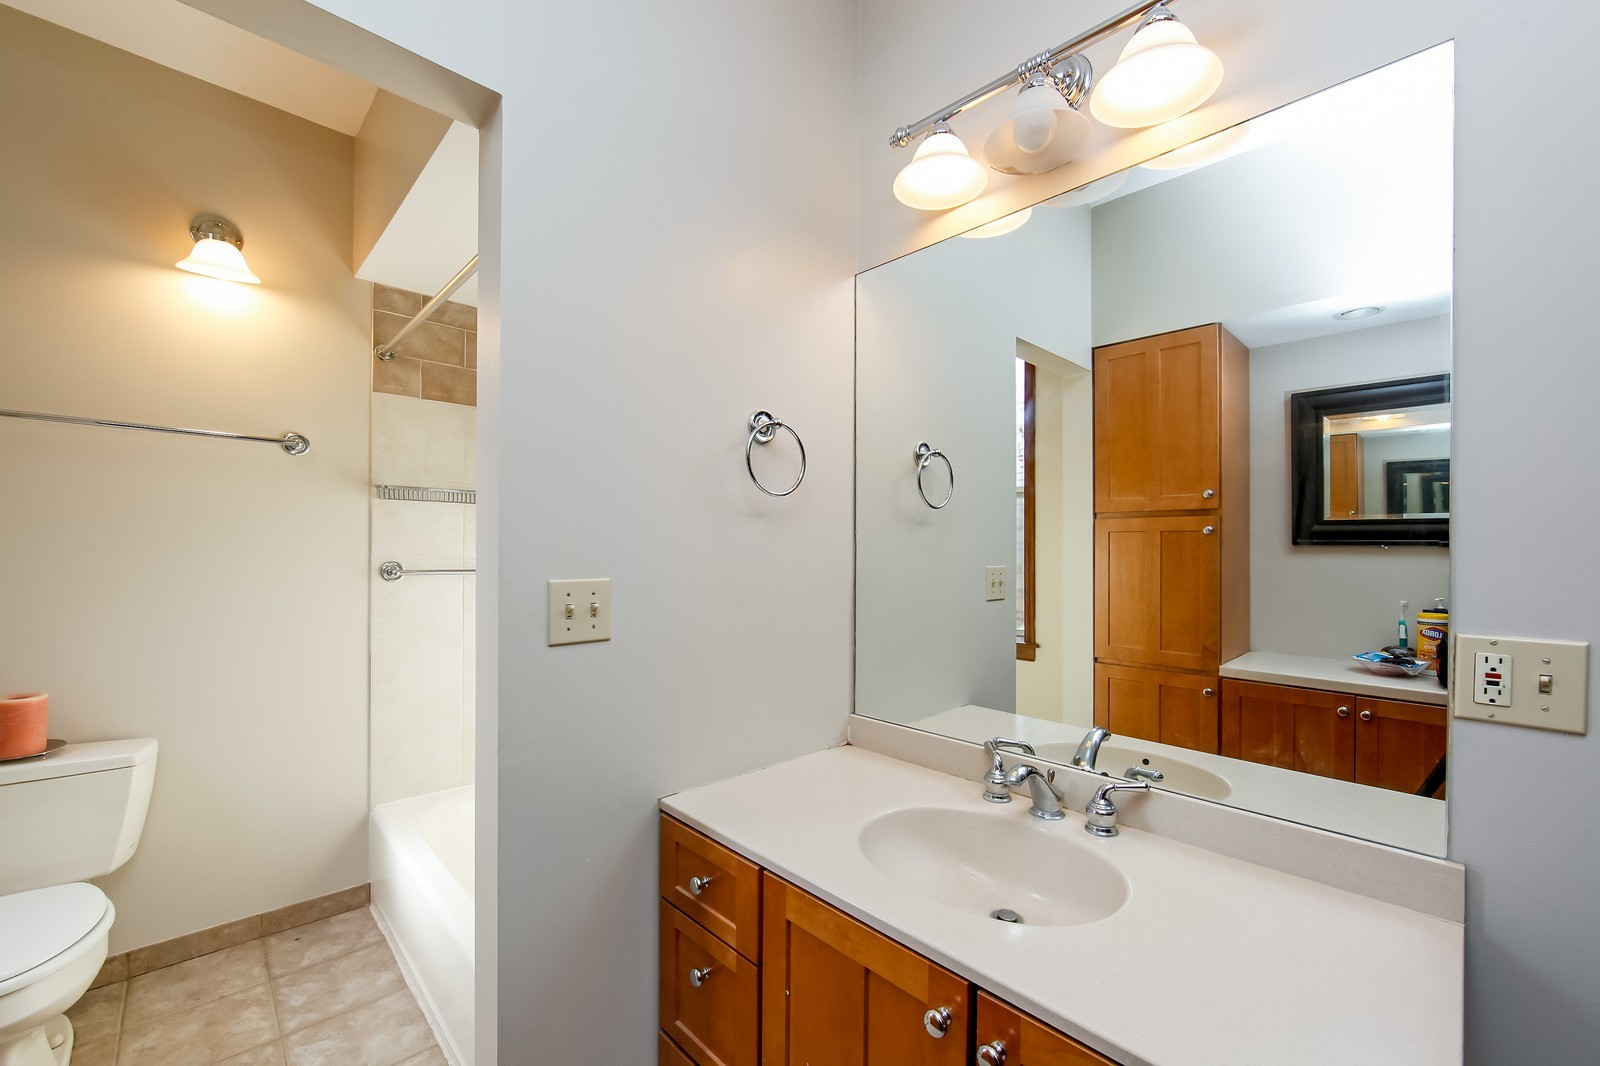 Real Estate Photography - 1748 N Honore, 1,2, 3, Chicago, IL, 60622 - Master Bathroom